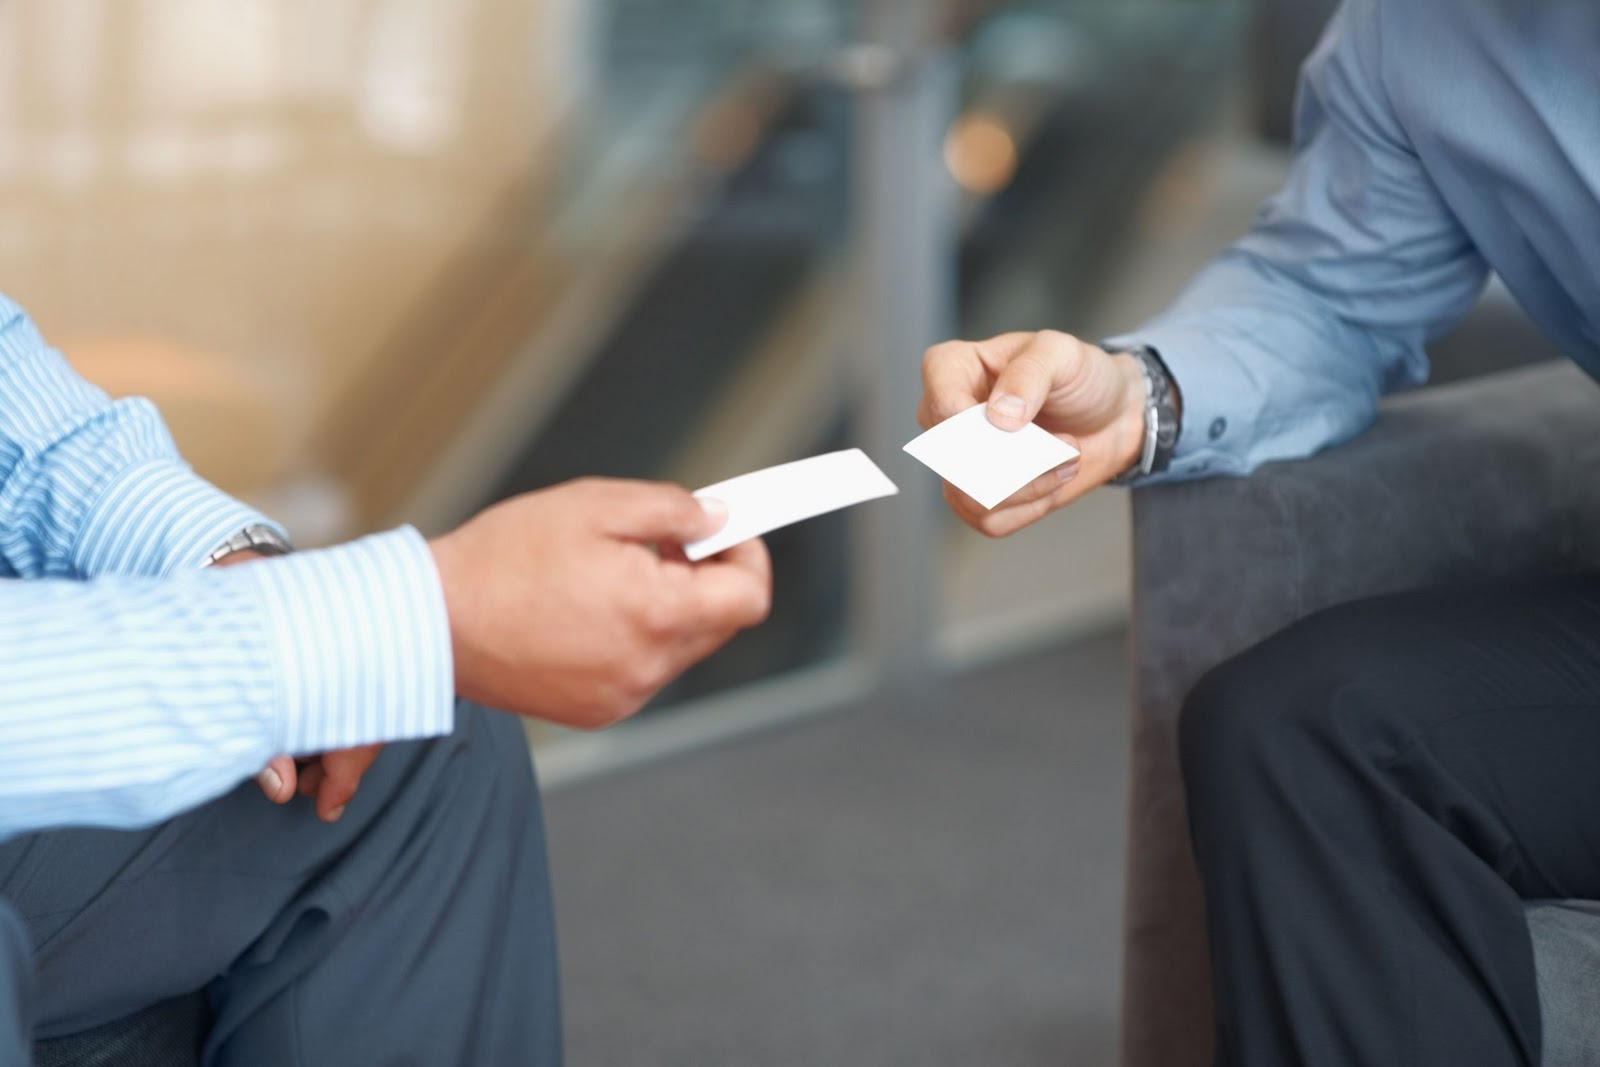 exchanging business cards.jpg